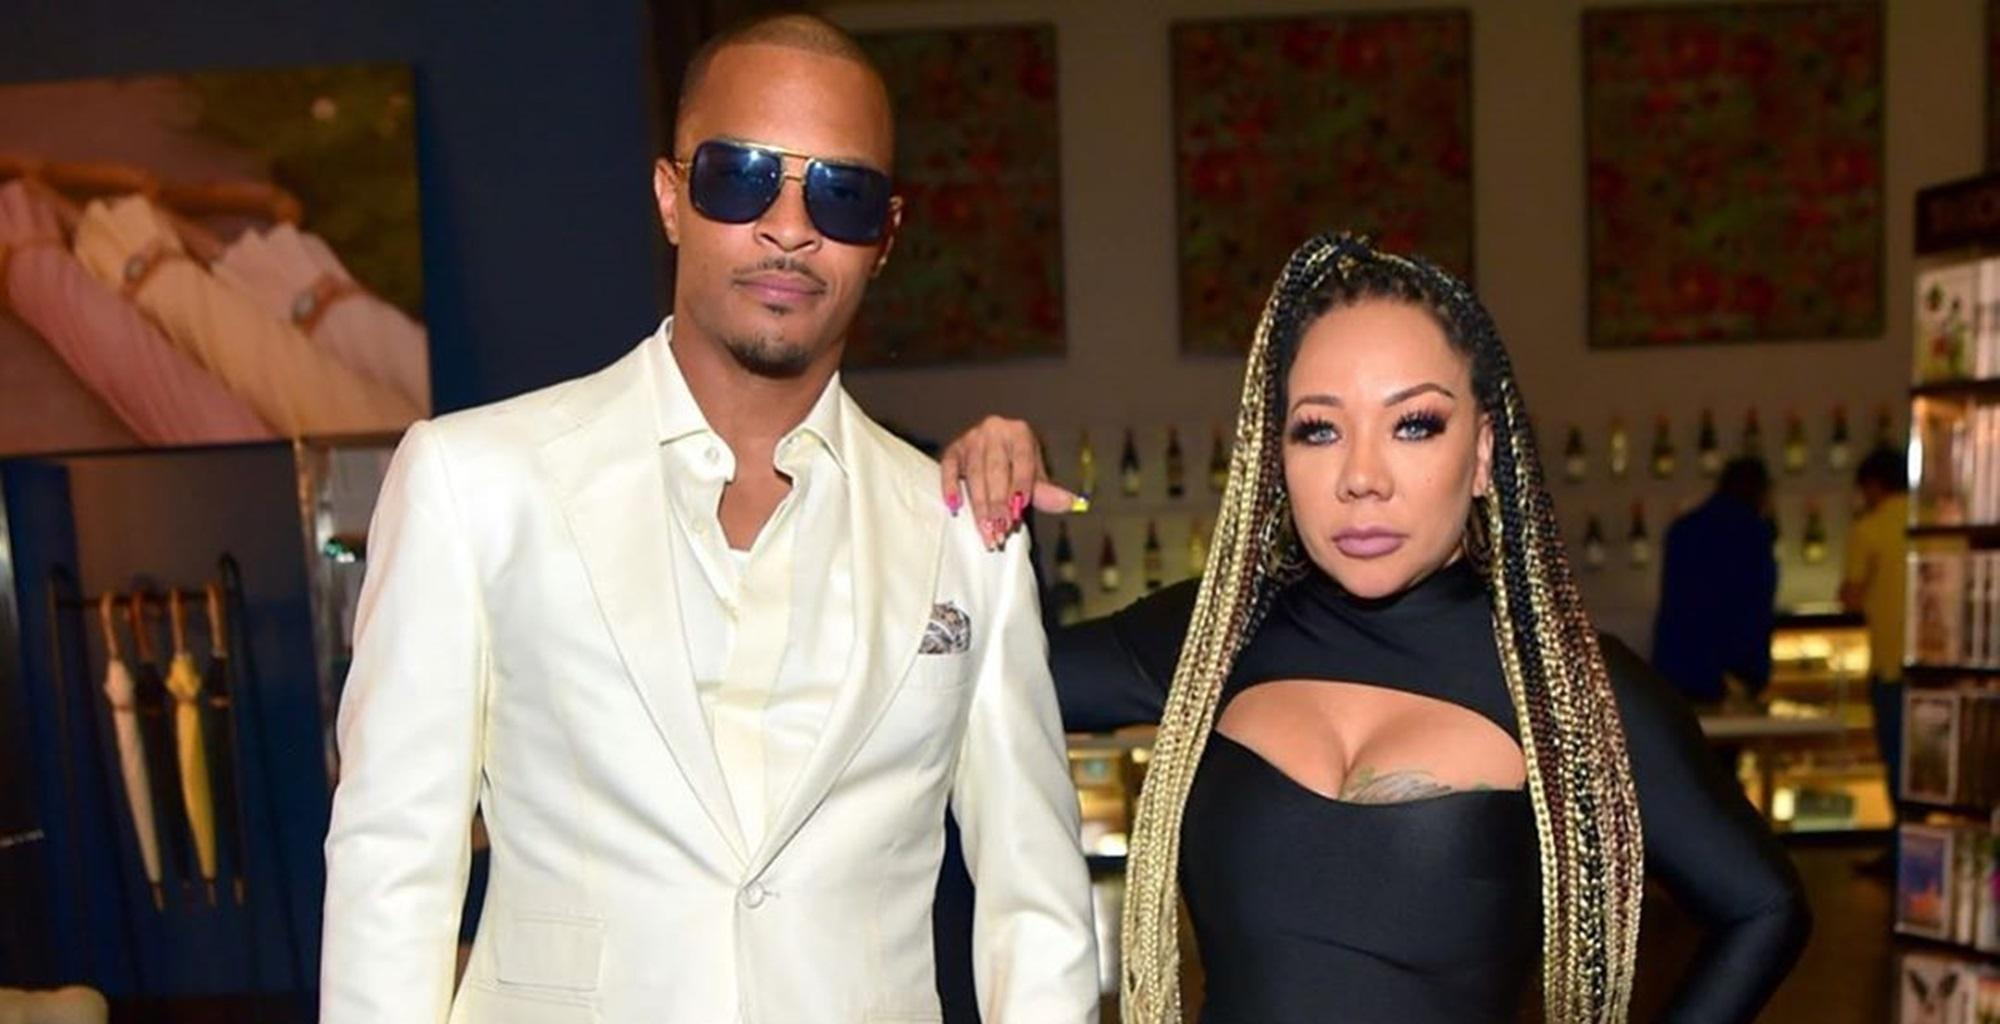 Tiny Harris Throws T.I. A Spectacular Star-Studded Party -- Photos Show All Their Kids, Toya Wright, Phaedra Parks, And More Having A Great Time